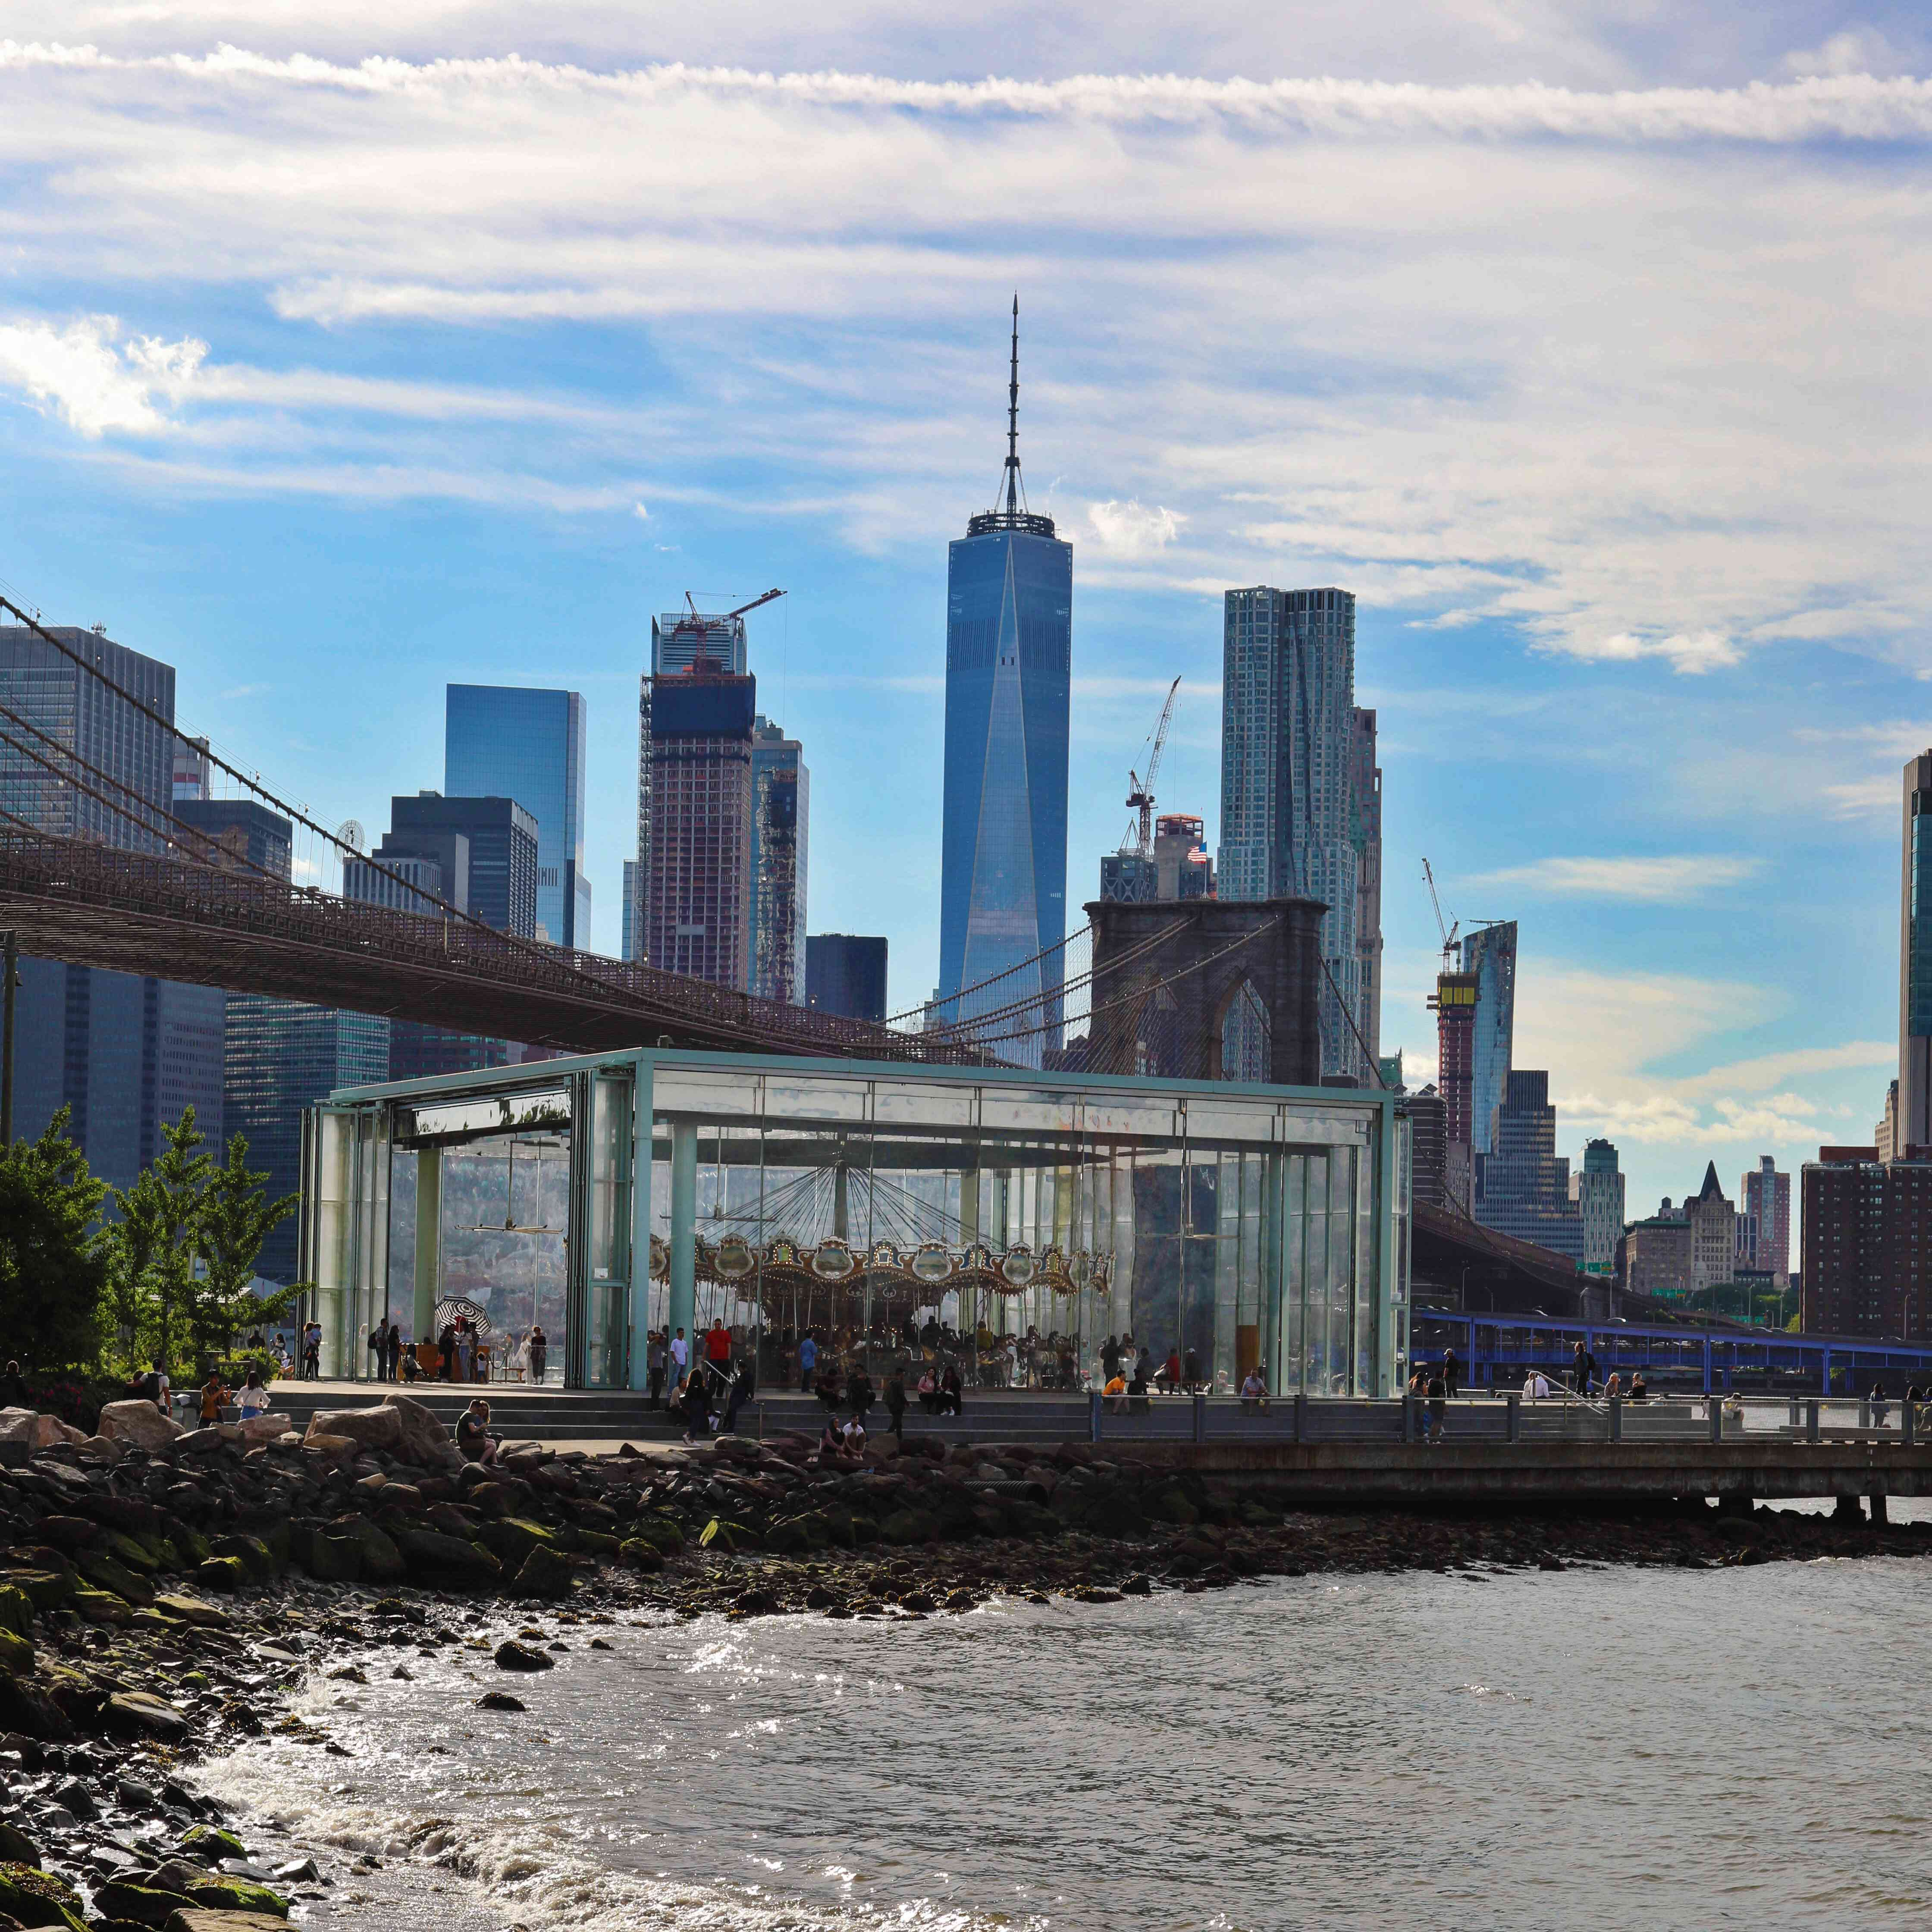 A scenic shot of Jane's Carousel with a view of the BK bridge and the manhattan skyline in the background